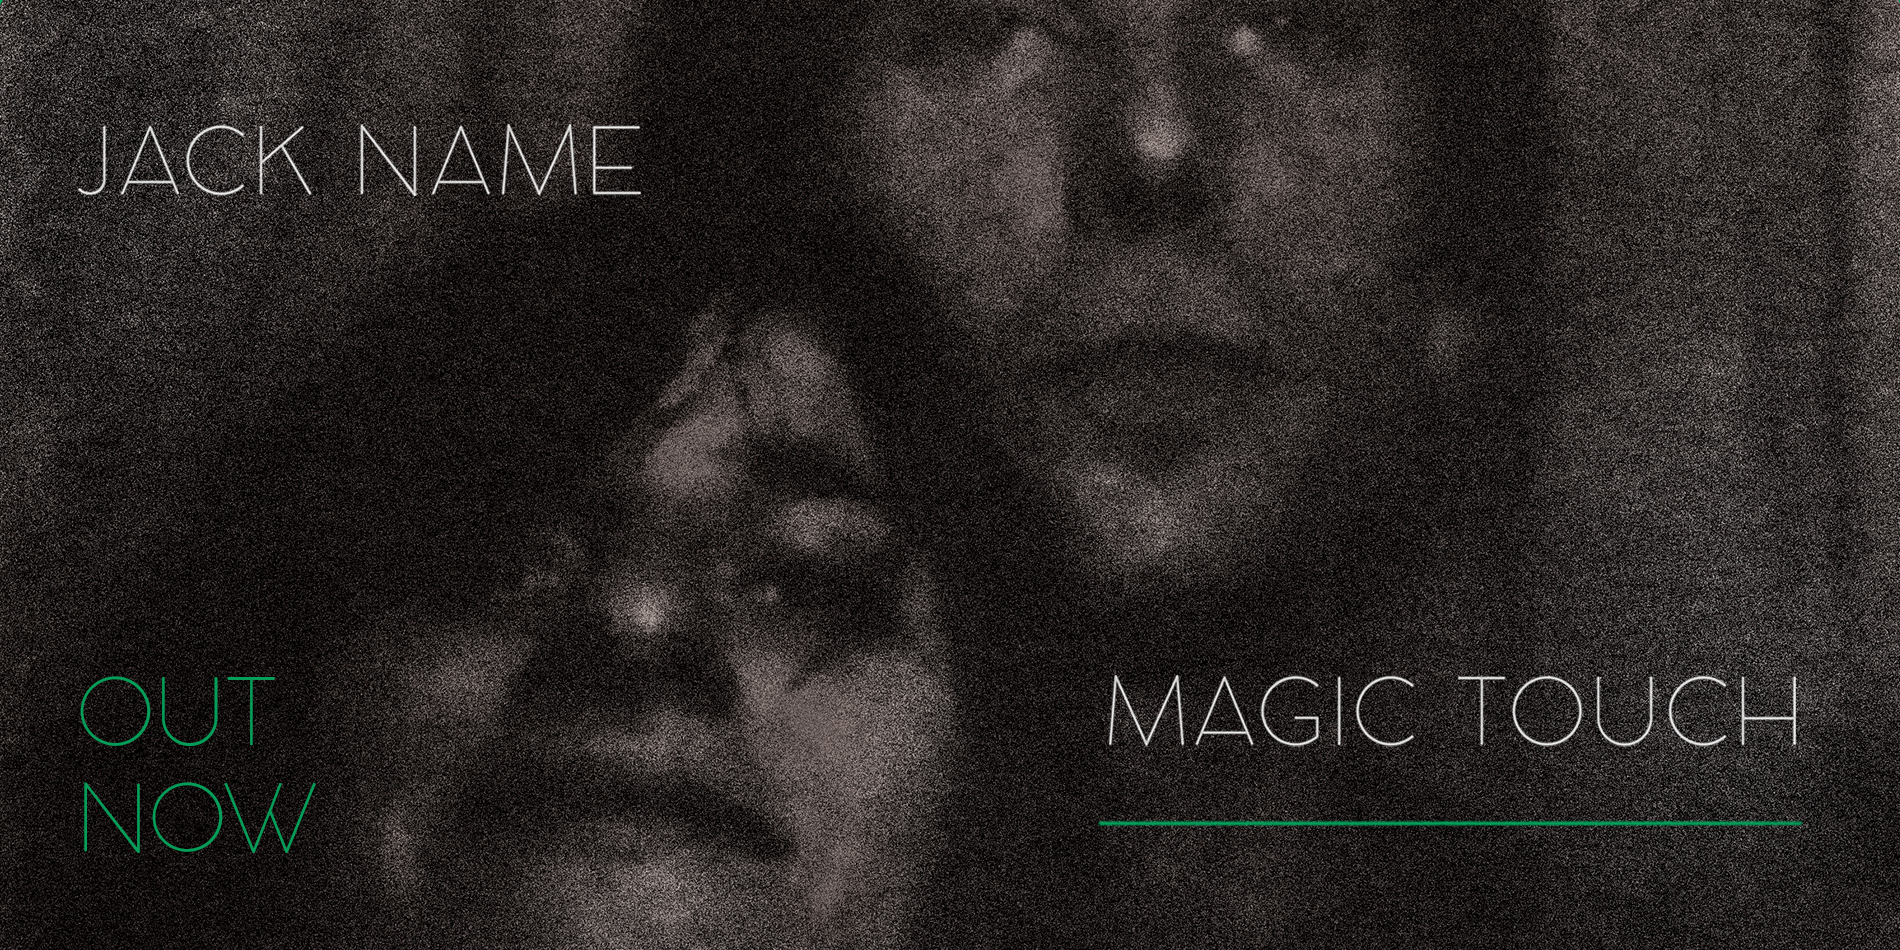 Jack Name Magic Touch Site Banner